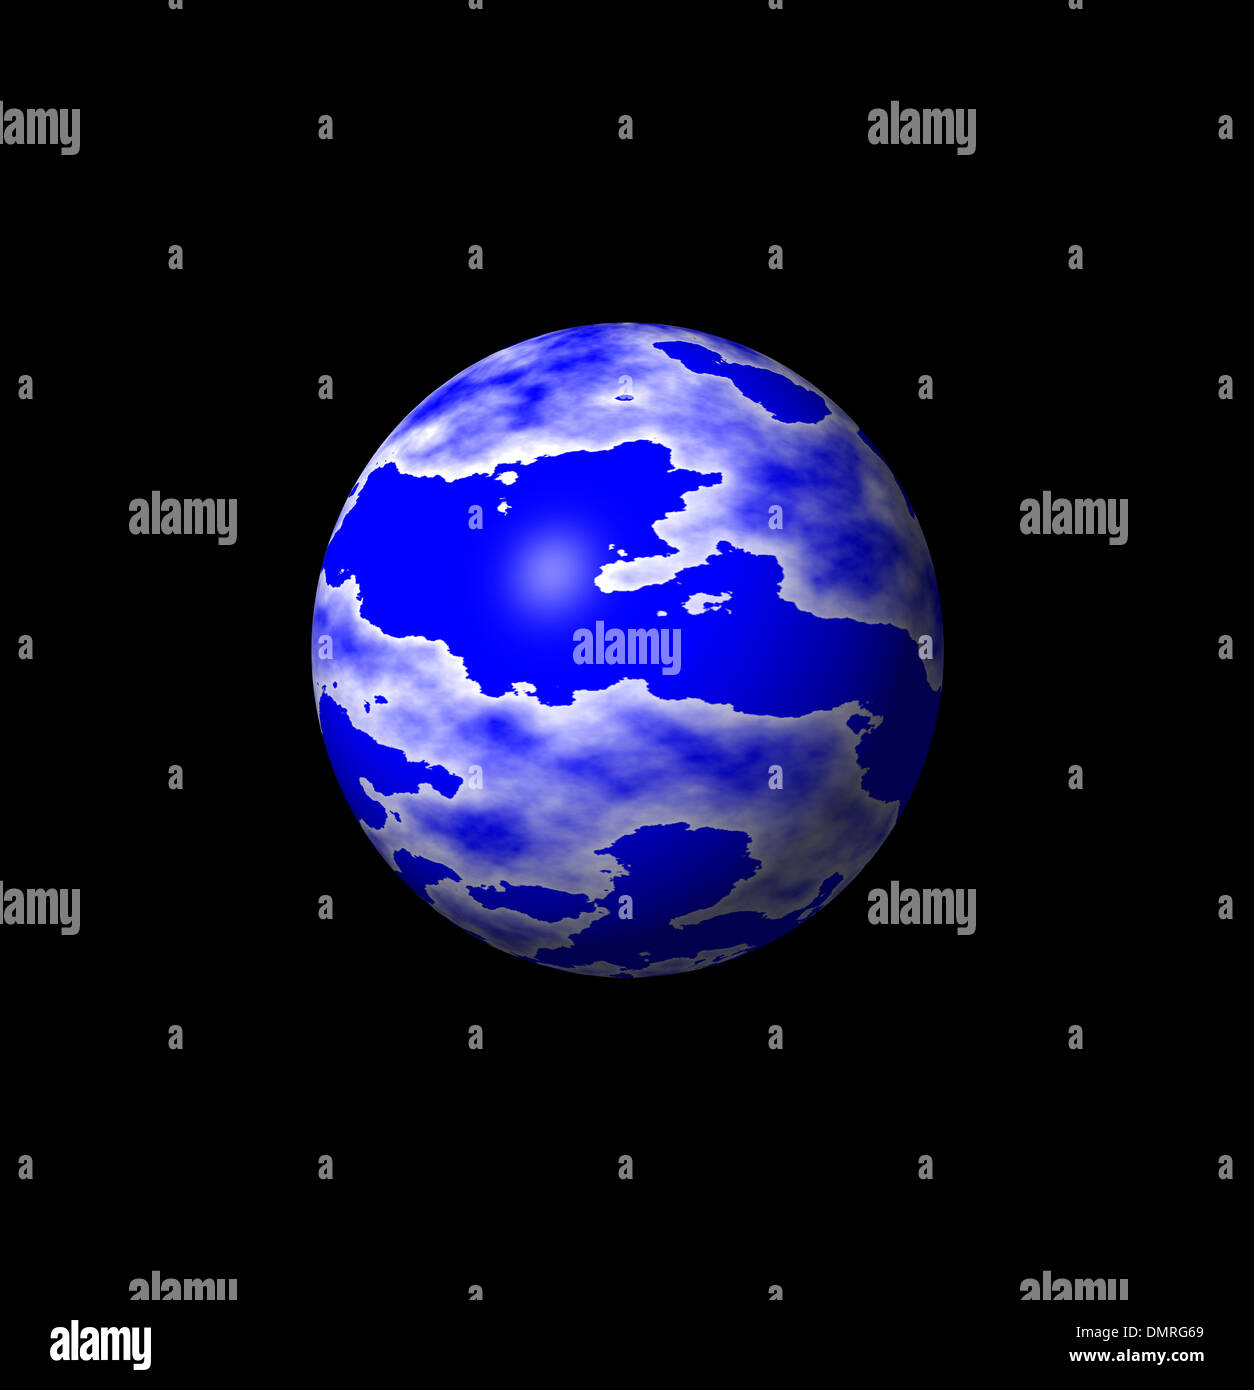 3-D blue and white globe - Stock Image